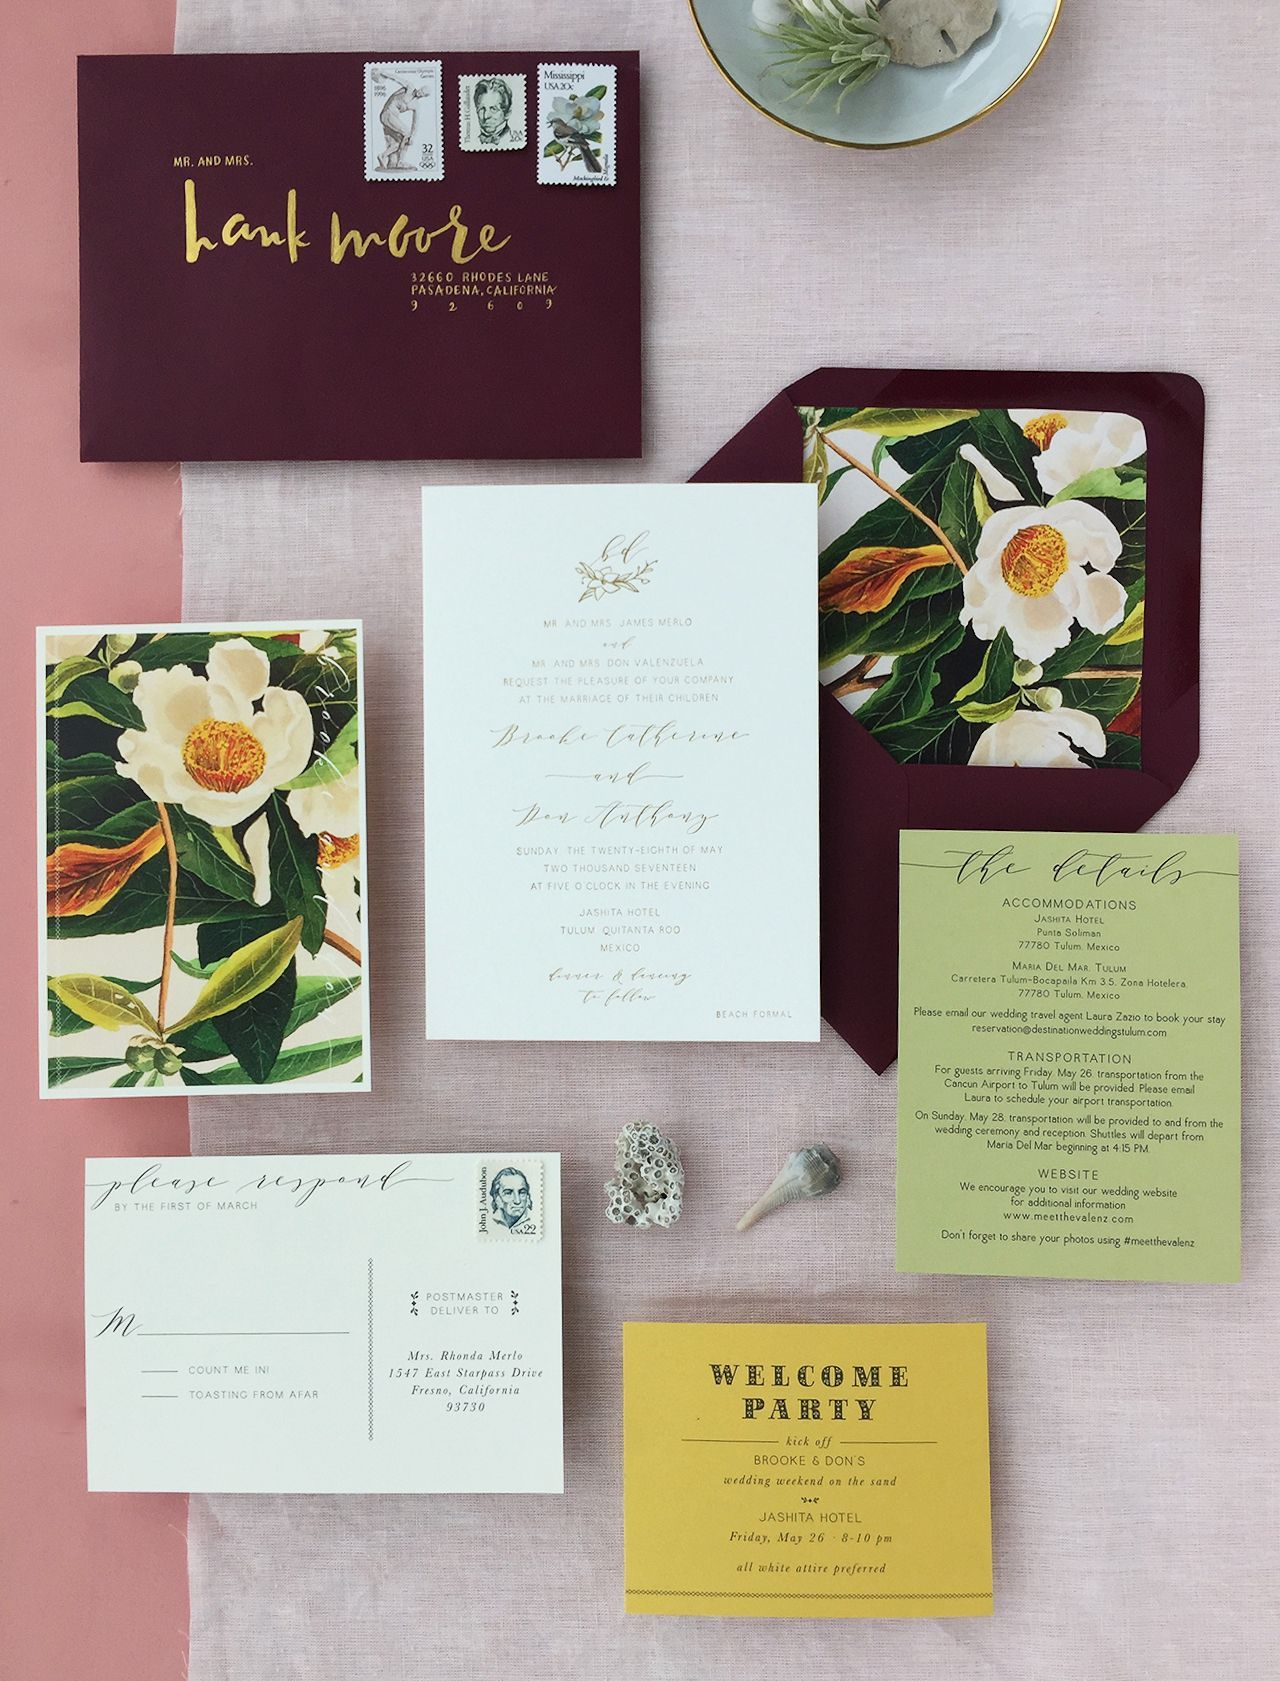 Romantic Burgundy And Gold Foil Wedding Invitations With Floral